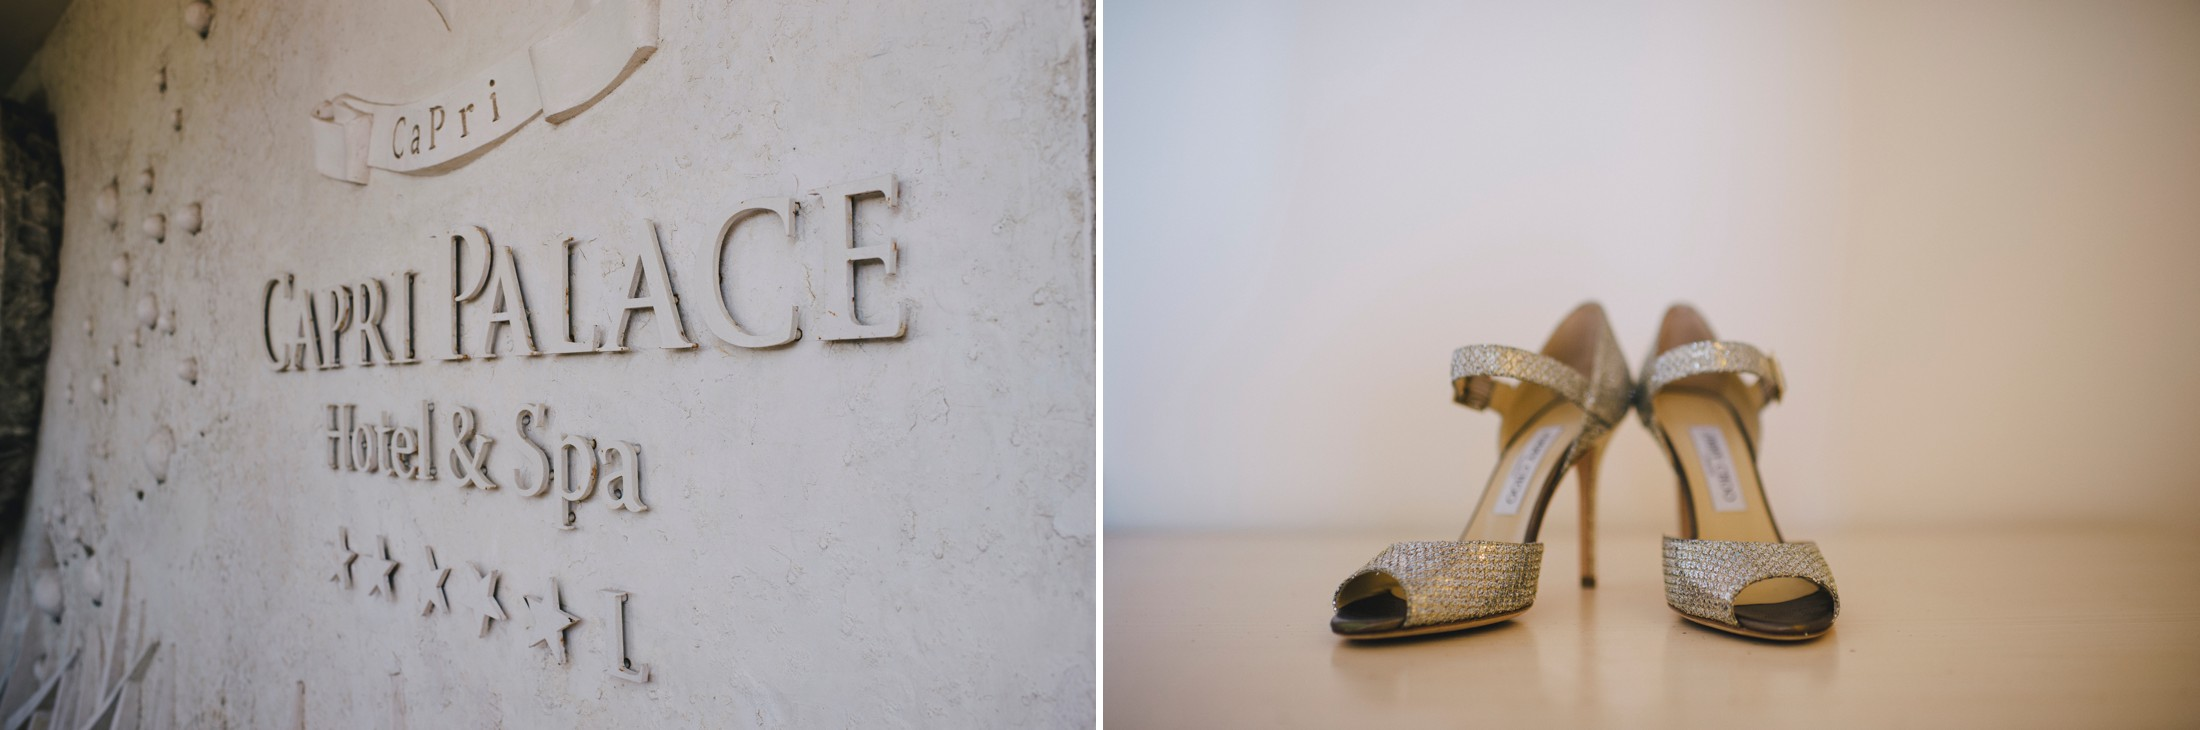 collage bride's shoes and capri palace entrance